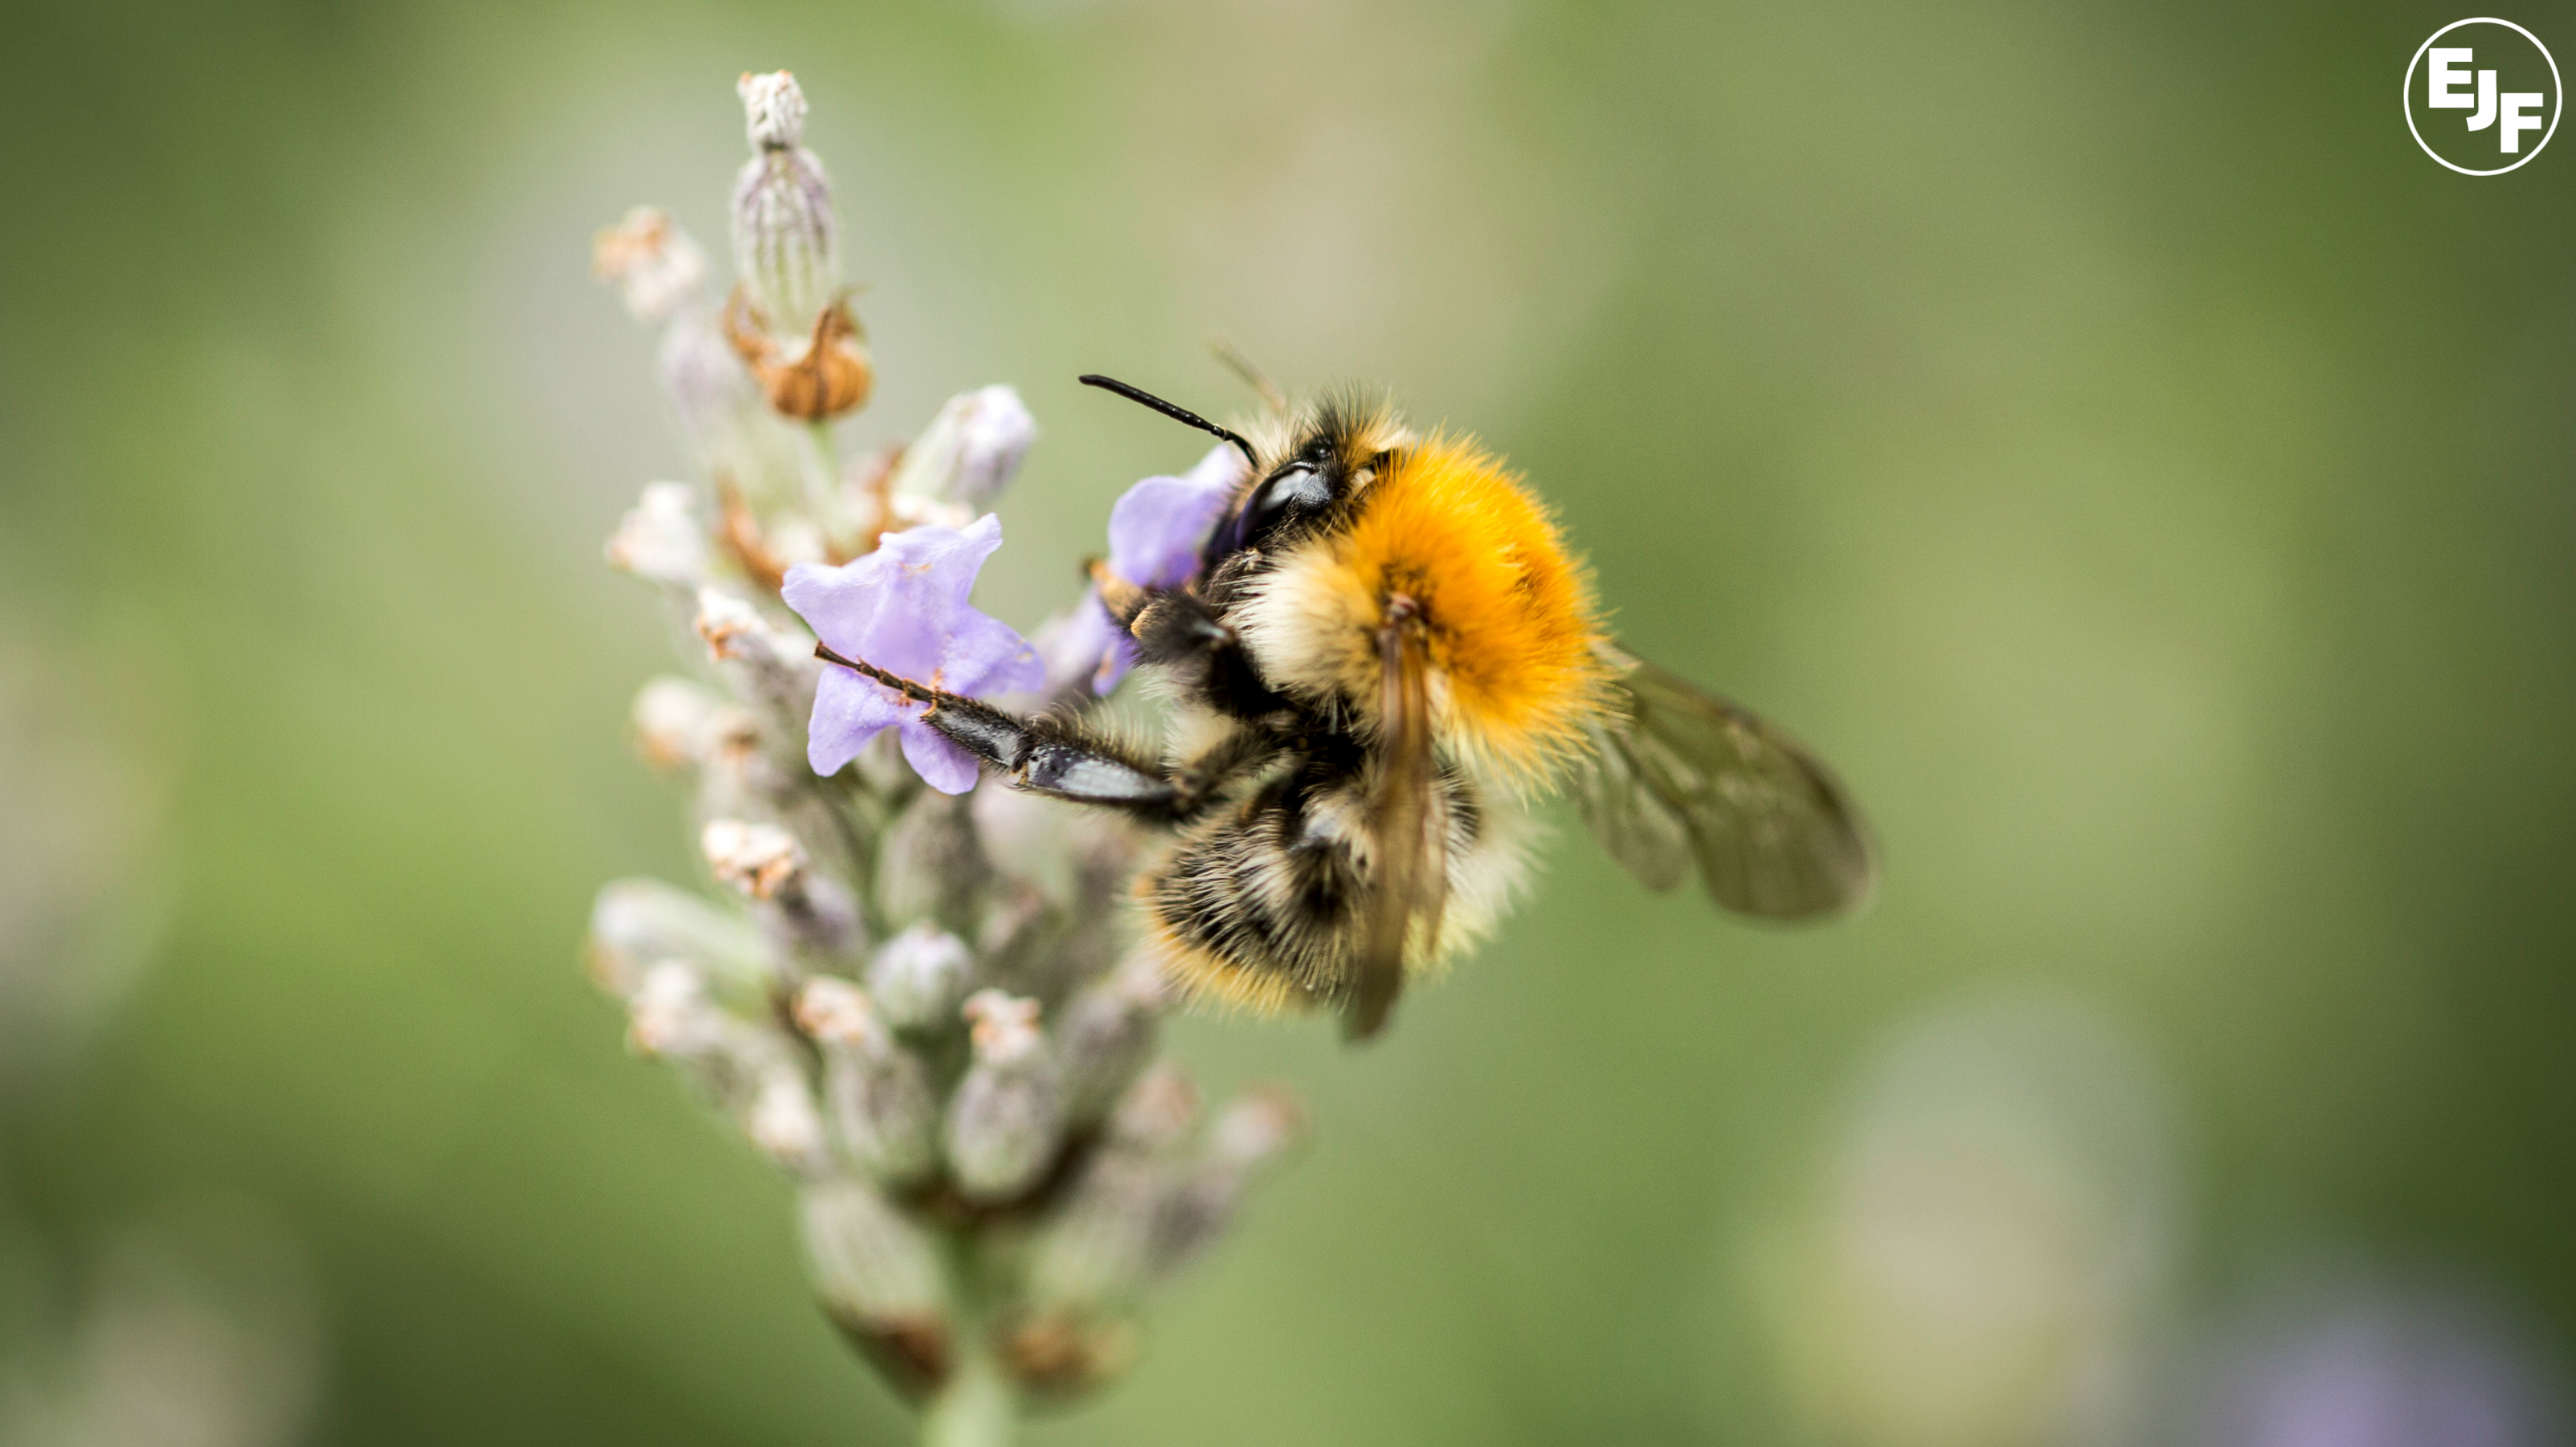 Press Release: Global review of pesticides shows extent of threat from Neonicotinoids